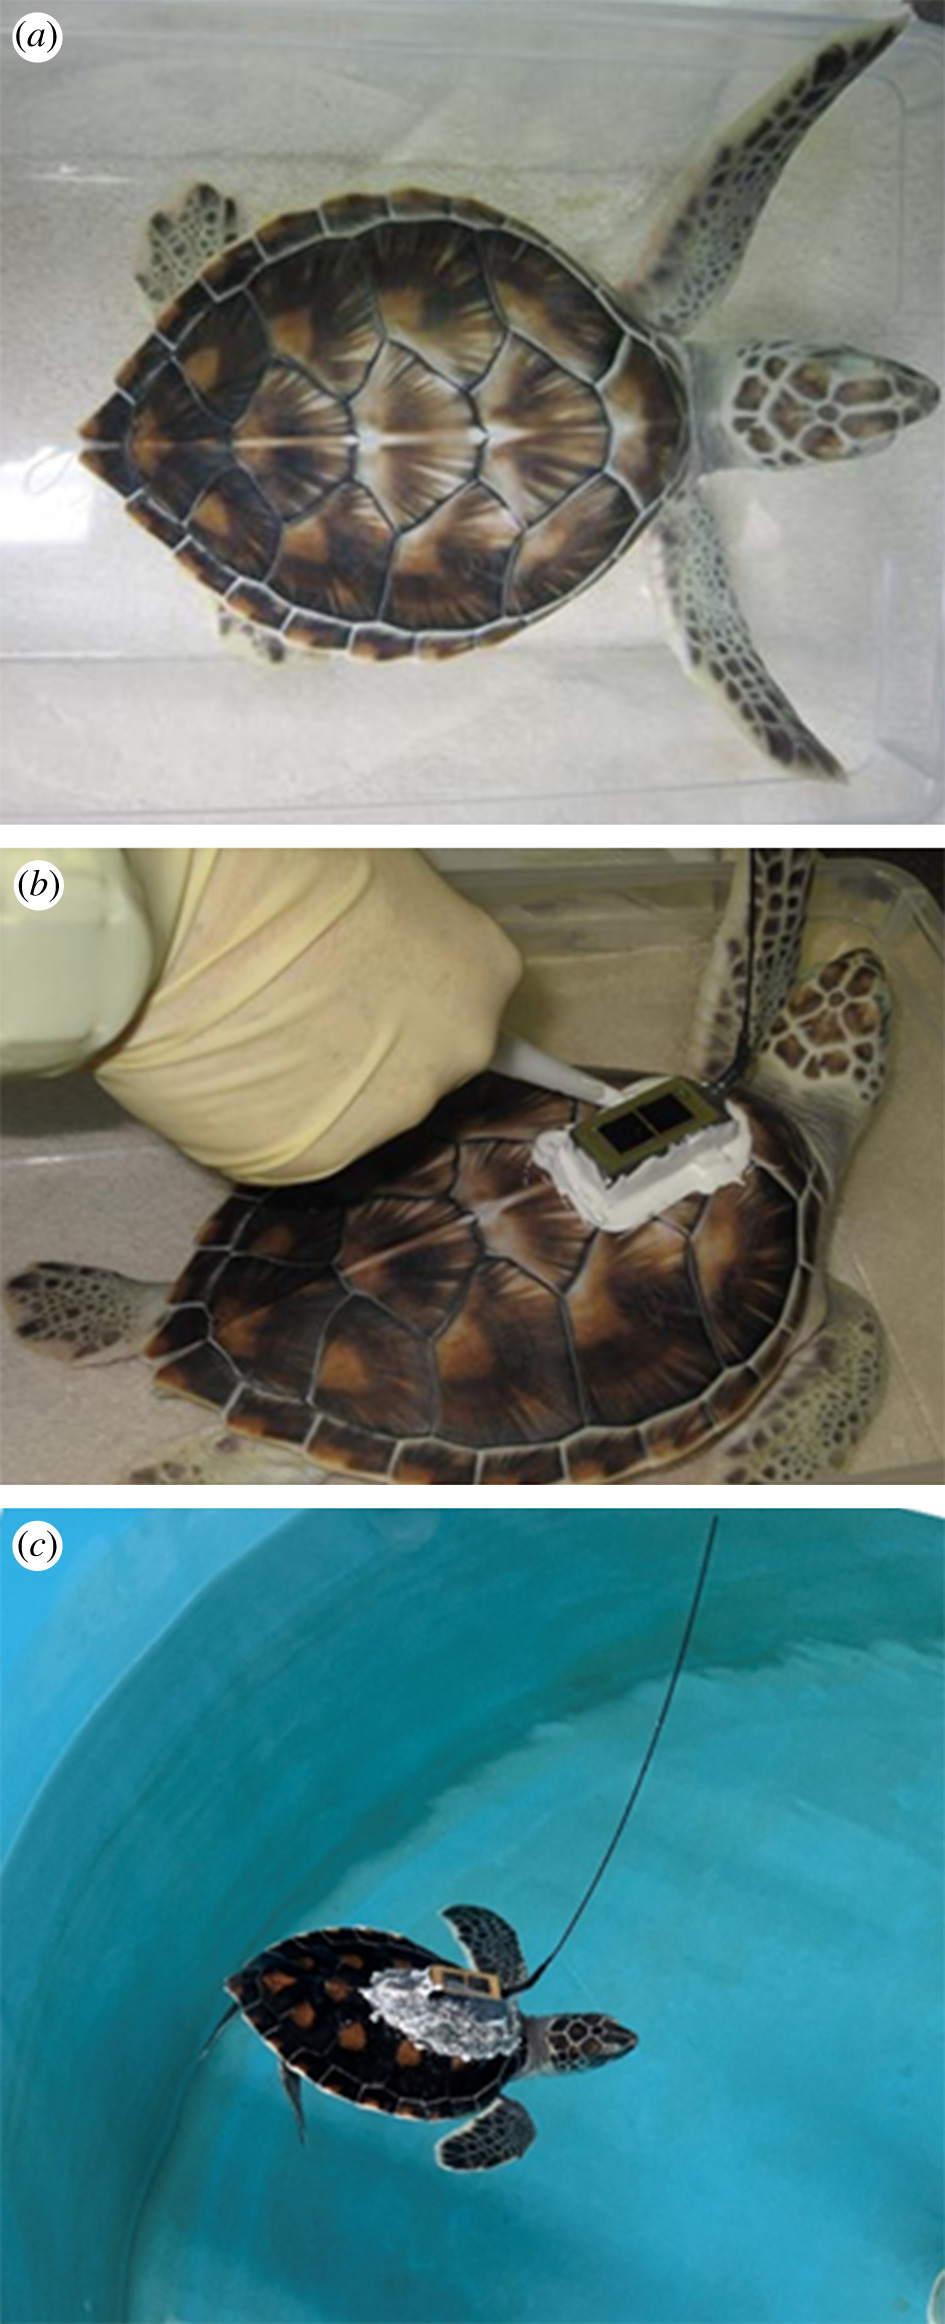 Three images stacked vertically, the first showing a baby green sea turtle with greenish limbs/head and a brown shell, the second showing a gloved hand gluing a piece of technology to the turtle's shell, and the third showing a small sea turtle swimming in a pool with the tag stuck to it's back and an antenna sticking up.